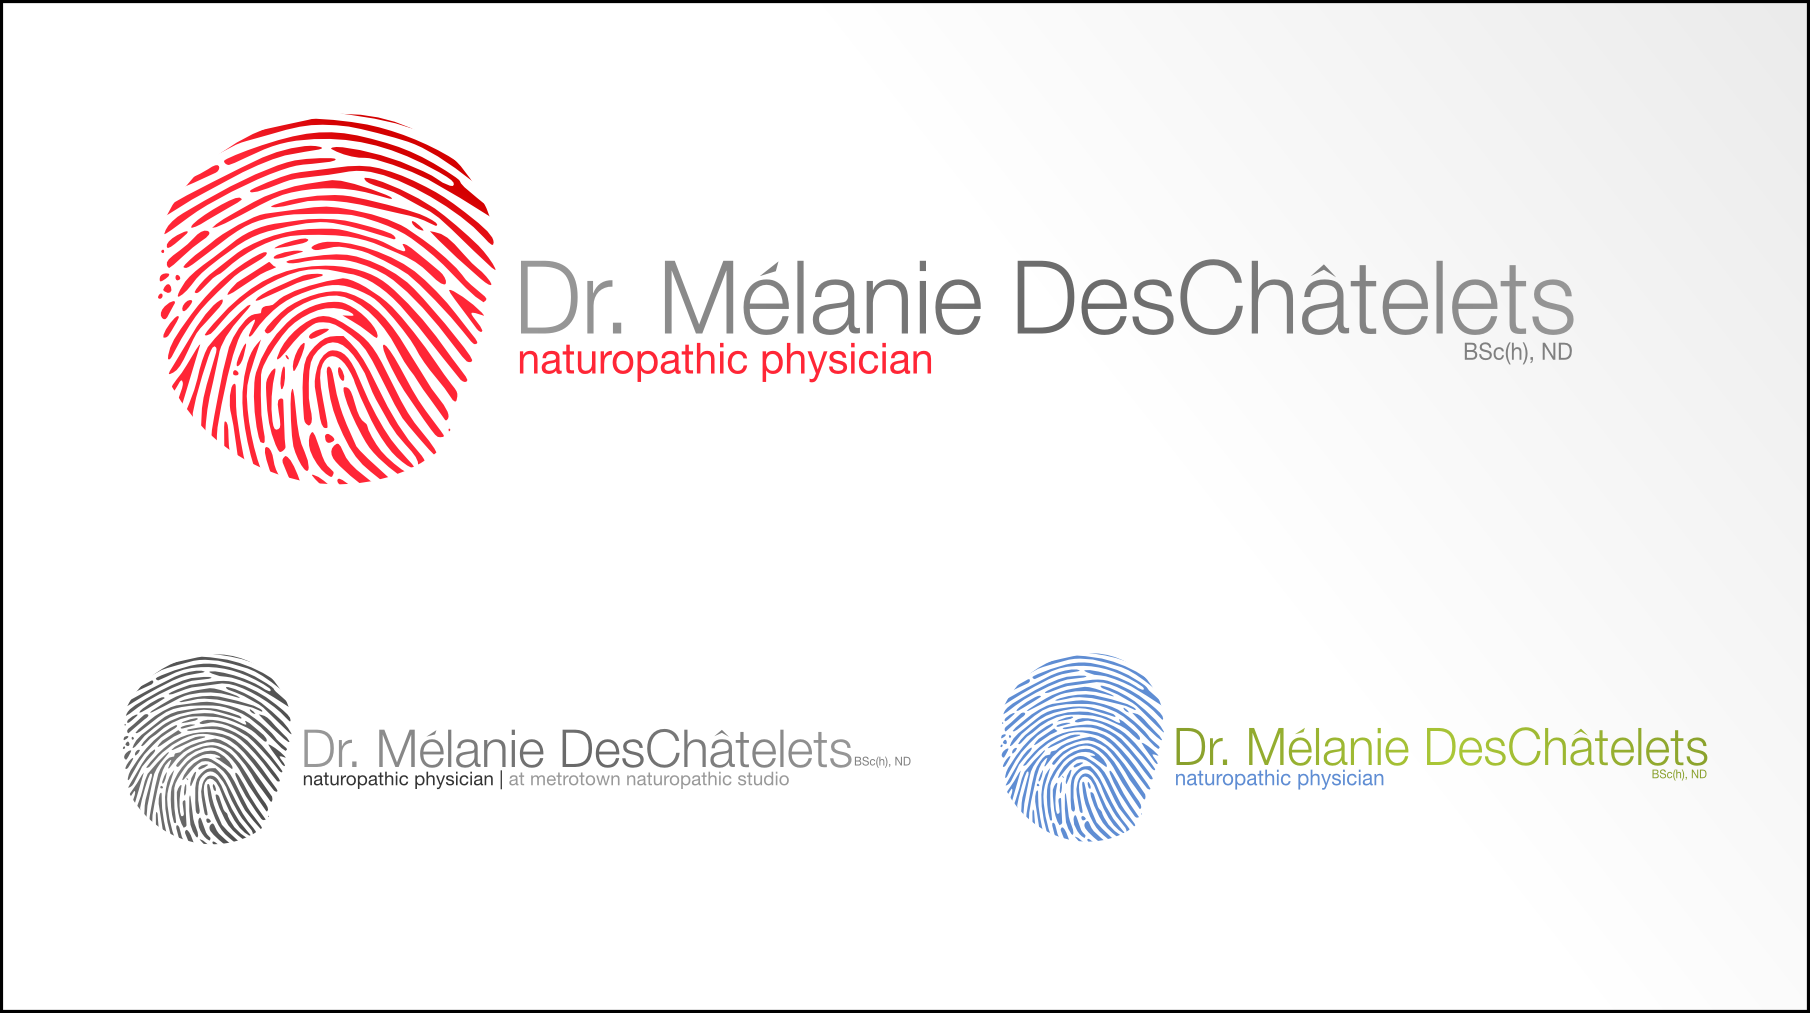 Logo Design by Andrew Bertram - Entry No. 4 in the Logo Design Contest Artistic Logo Design for Dr Mélanie DesChâtelets.